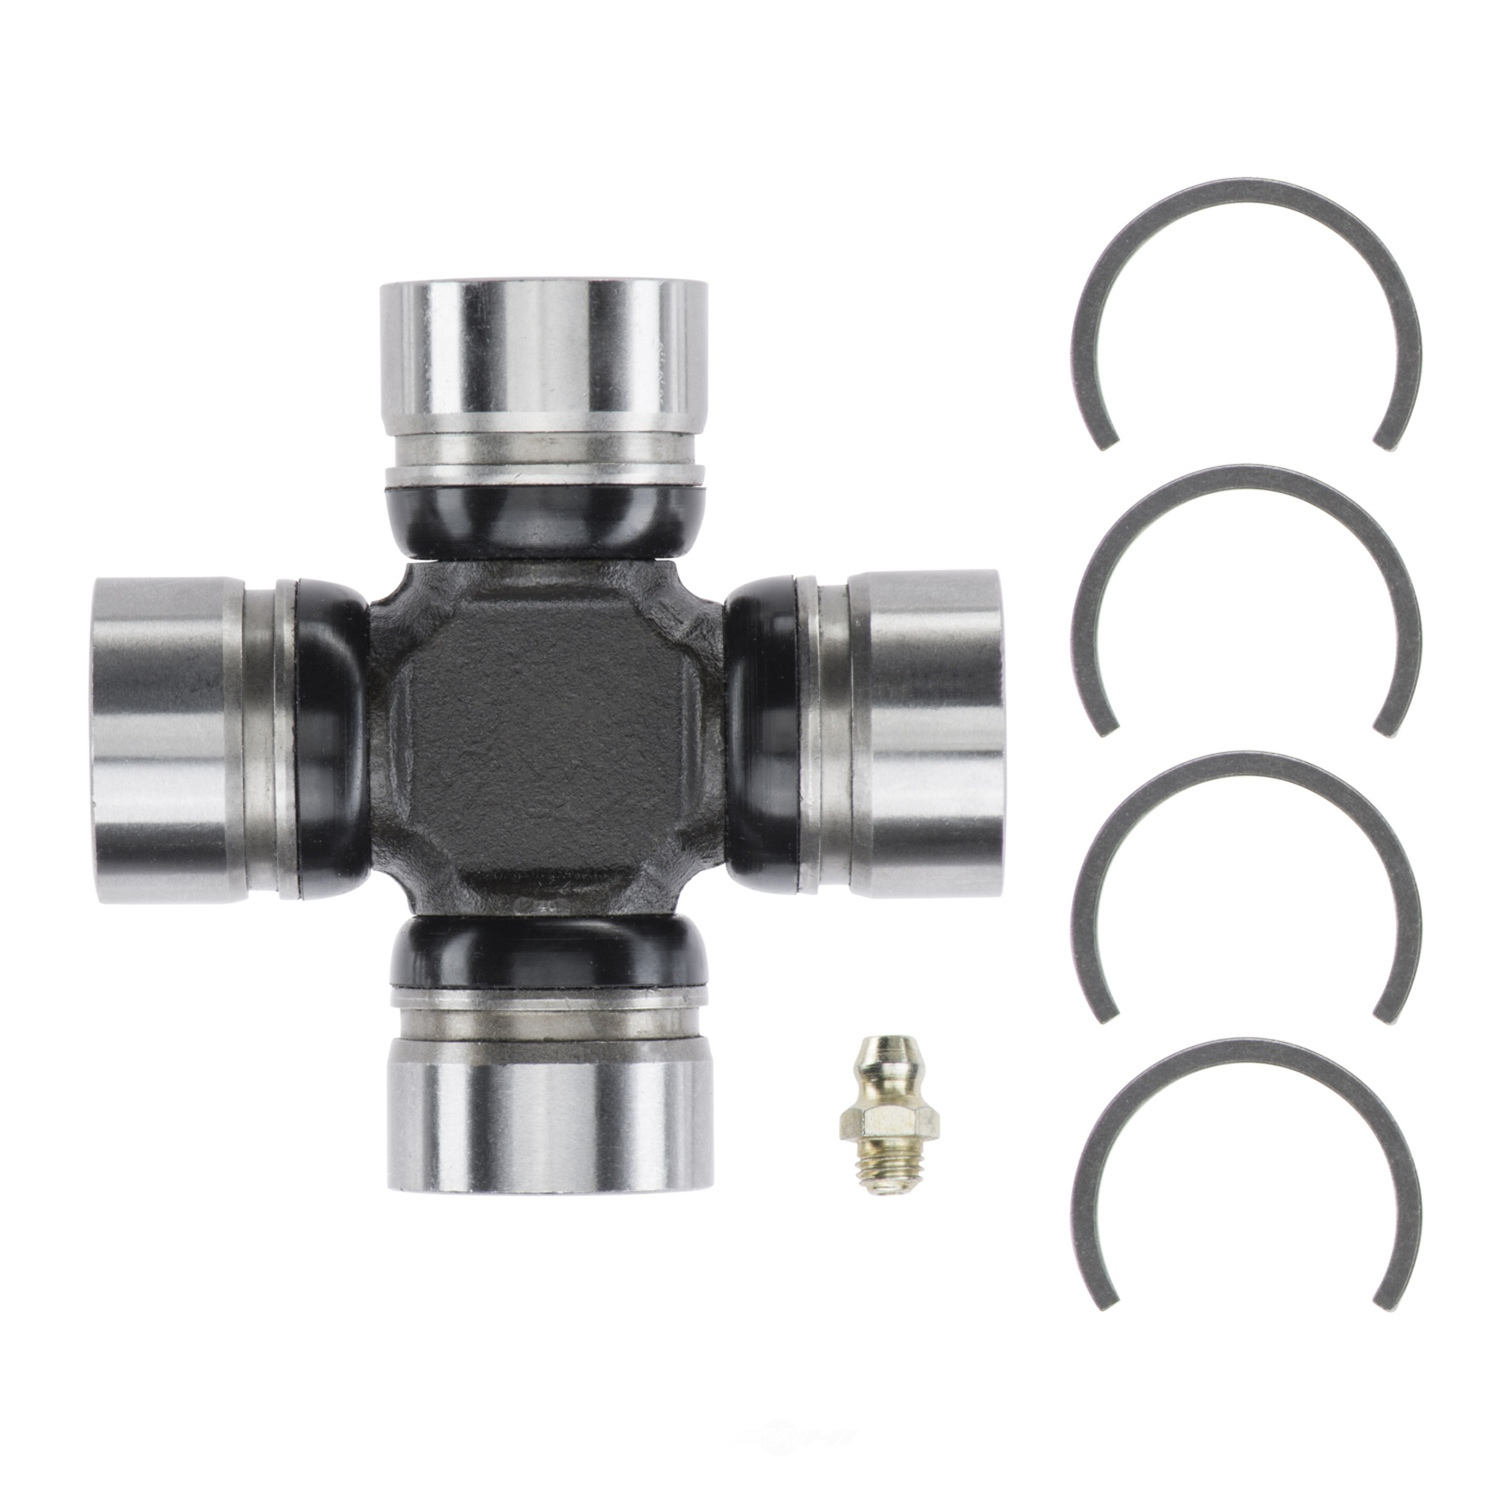 MOOG DRIVELINE PRODUCTS - Universal Joint (Front Driveshaft at Front Axle) - MDP 285